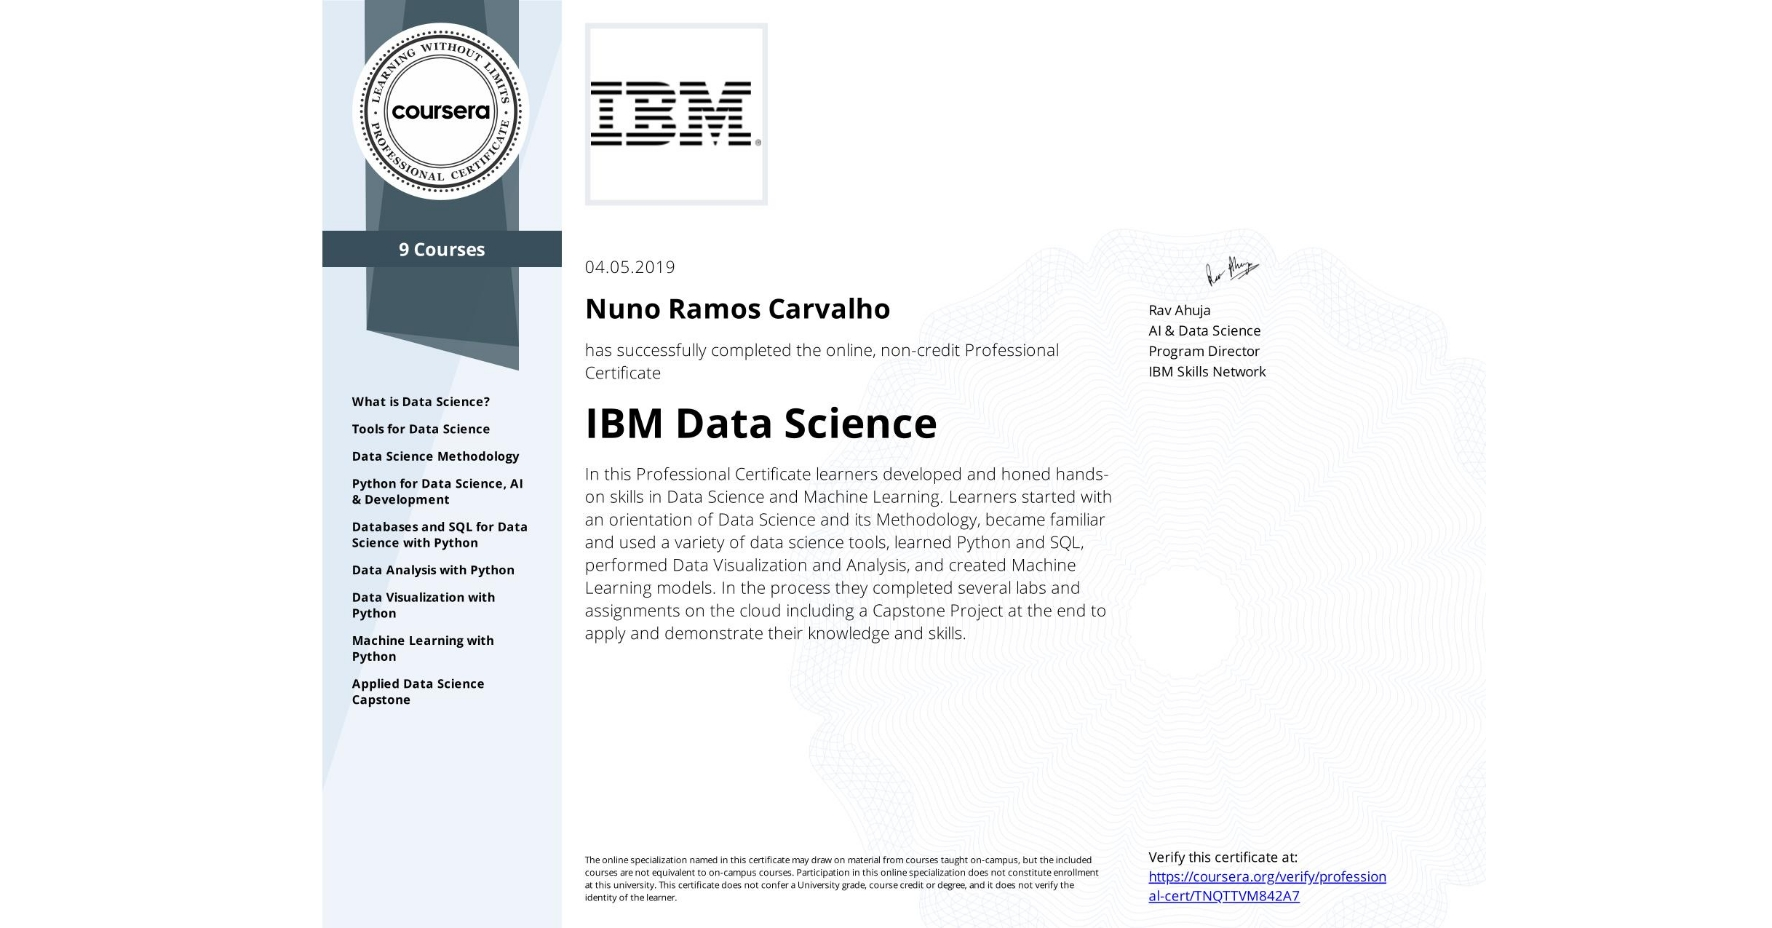 View certificate for Nuno Ramos Carvalho, IBM Data Science, offered through Coursera. In this Professional Certificate learners developed and honed hands-on skills in Data Science and Machine Learning. Learners started with an orientation of Data Science and its Methodology, became familiar and used a variety of data science tools, learned Python and SQL, performed Data Visualization and Analysis, and created Machine Learning models.  In the process they completed several labs and assignments on the cloud including a Capstone Project at the end to apply and demonstrate their knowledge and skills.